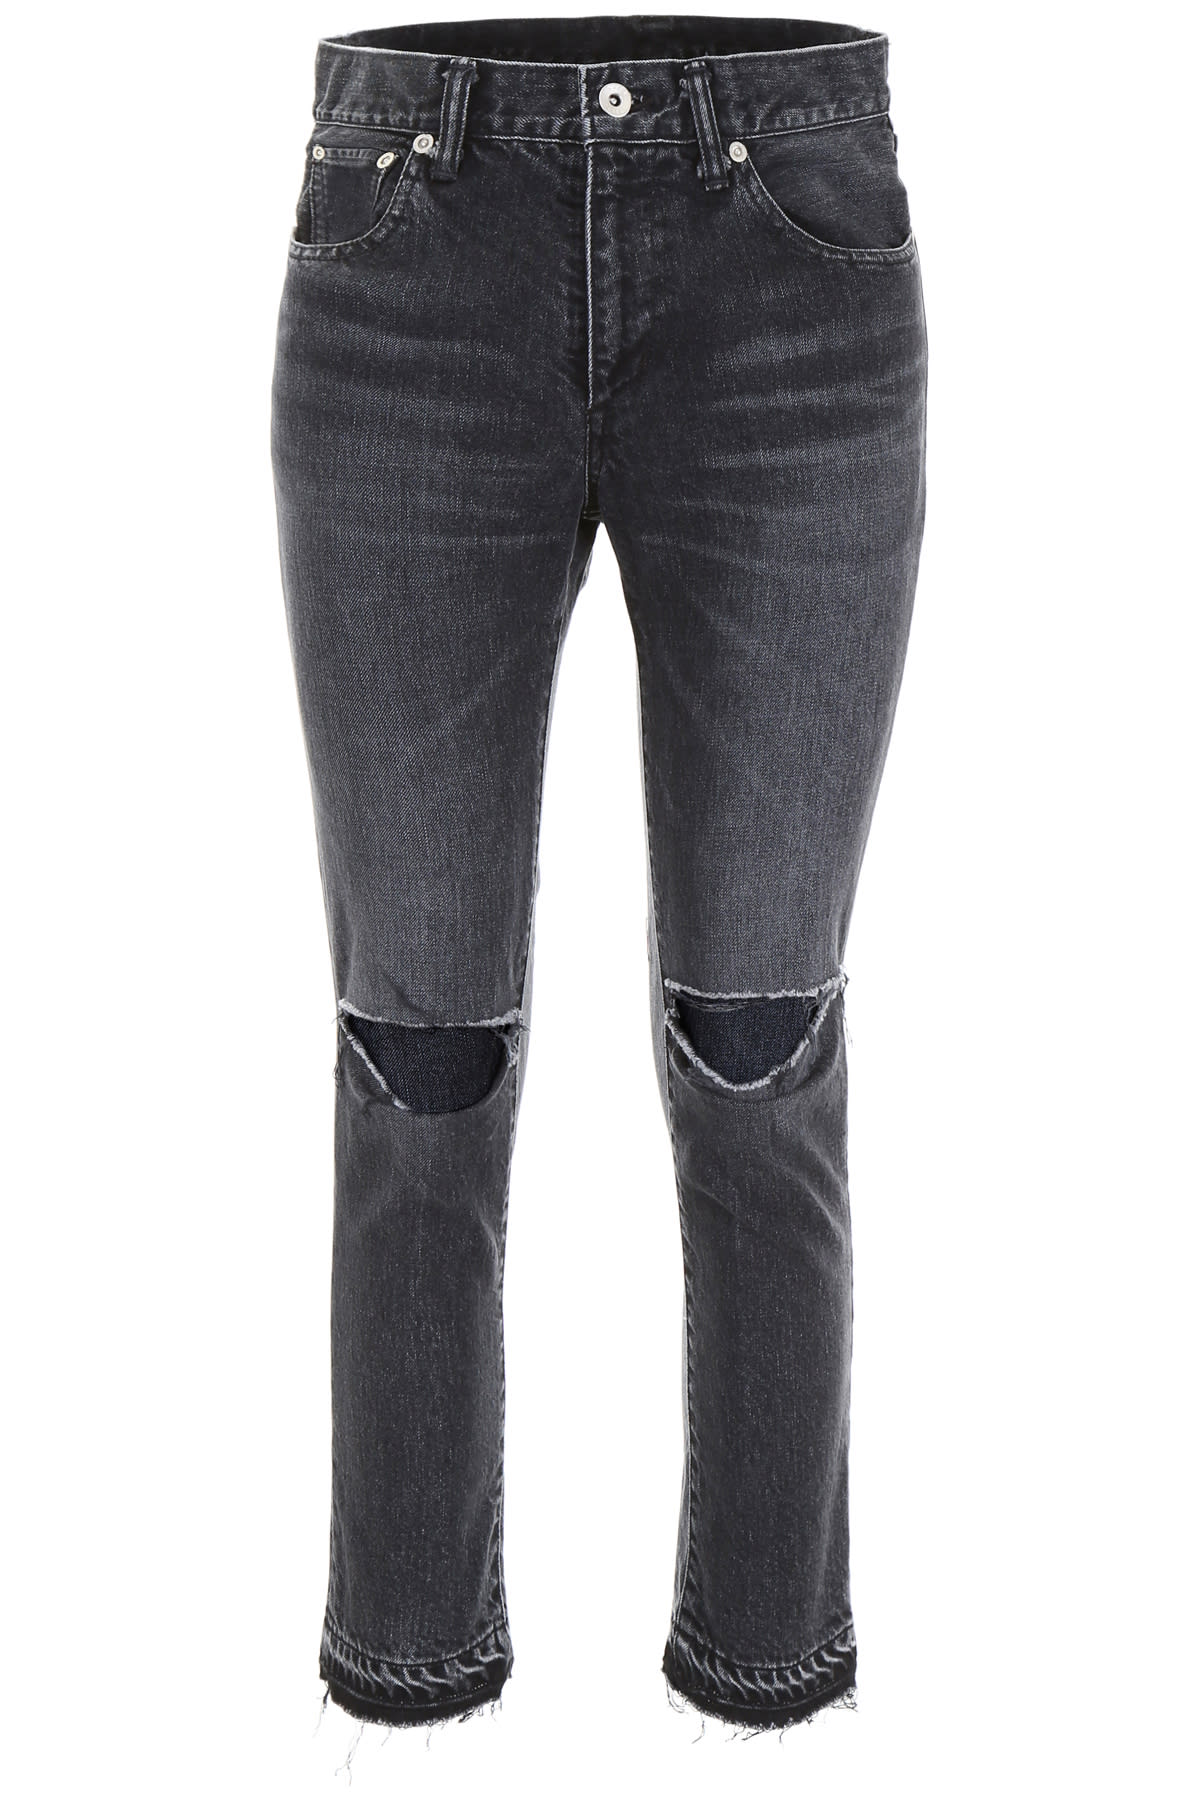 Sacai Jeans With Torn Knees